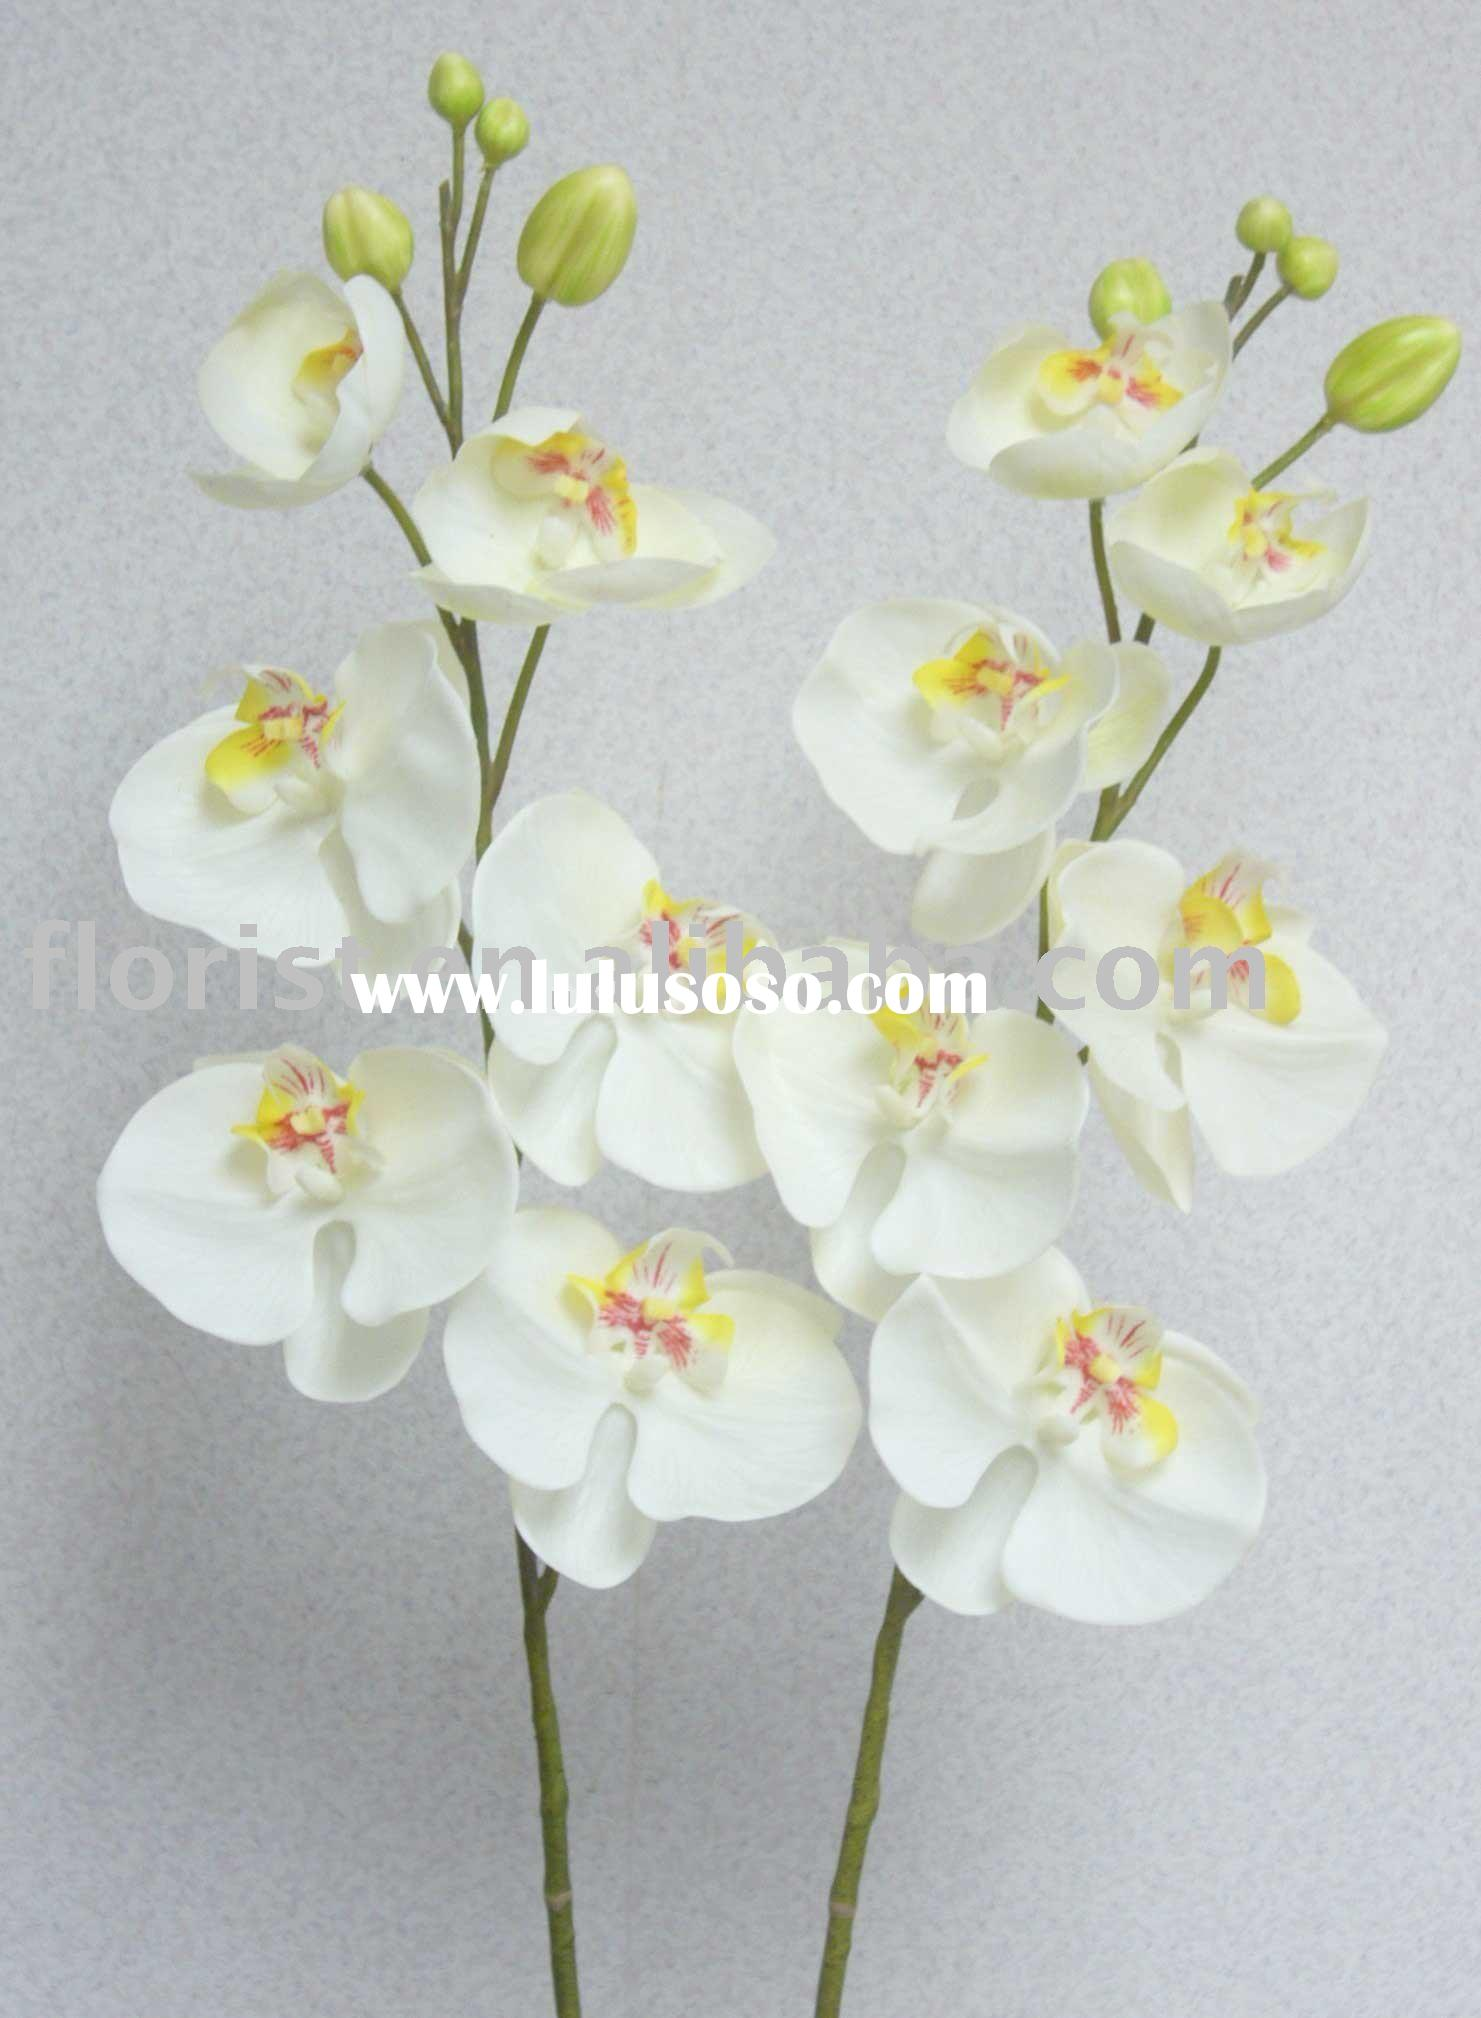 Phalaenopsis Orchid artificial flower (natural touch)